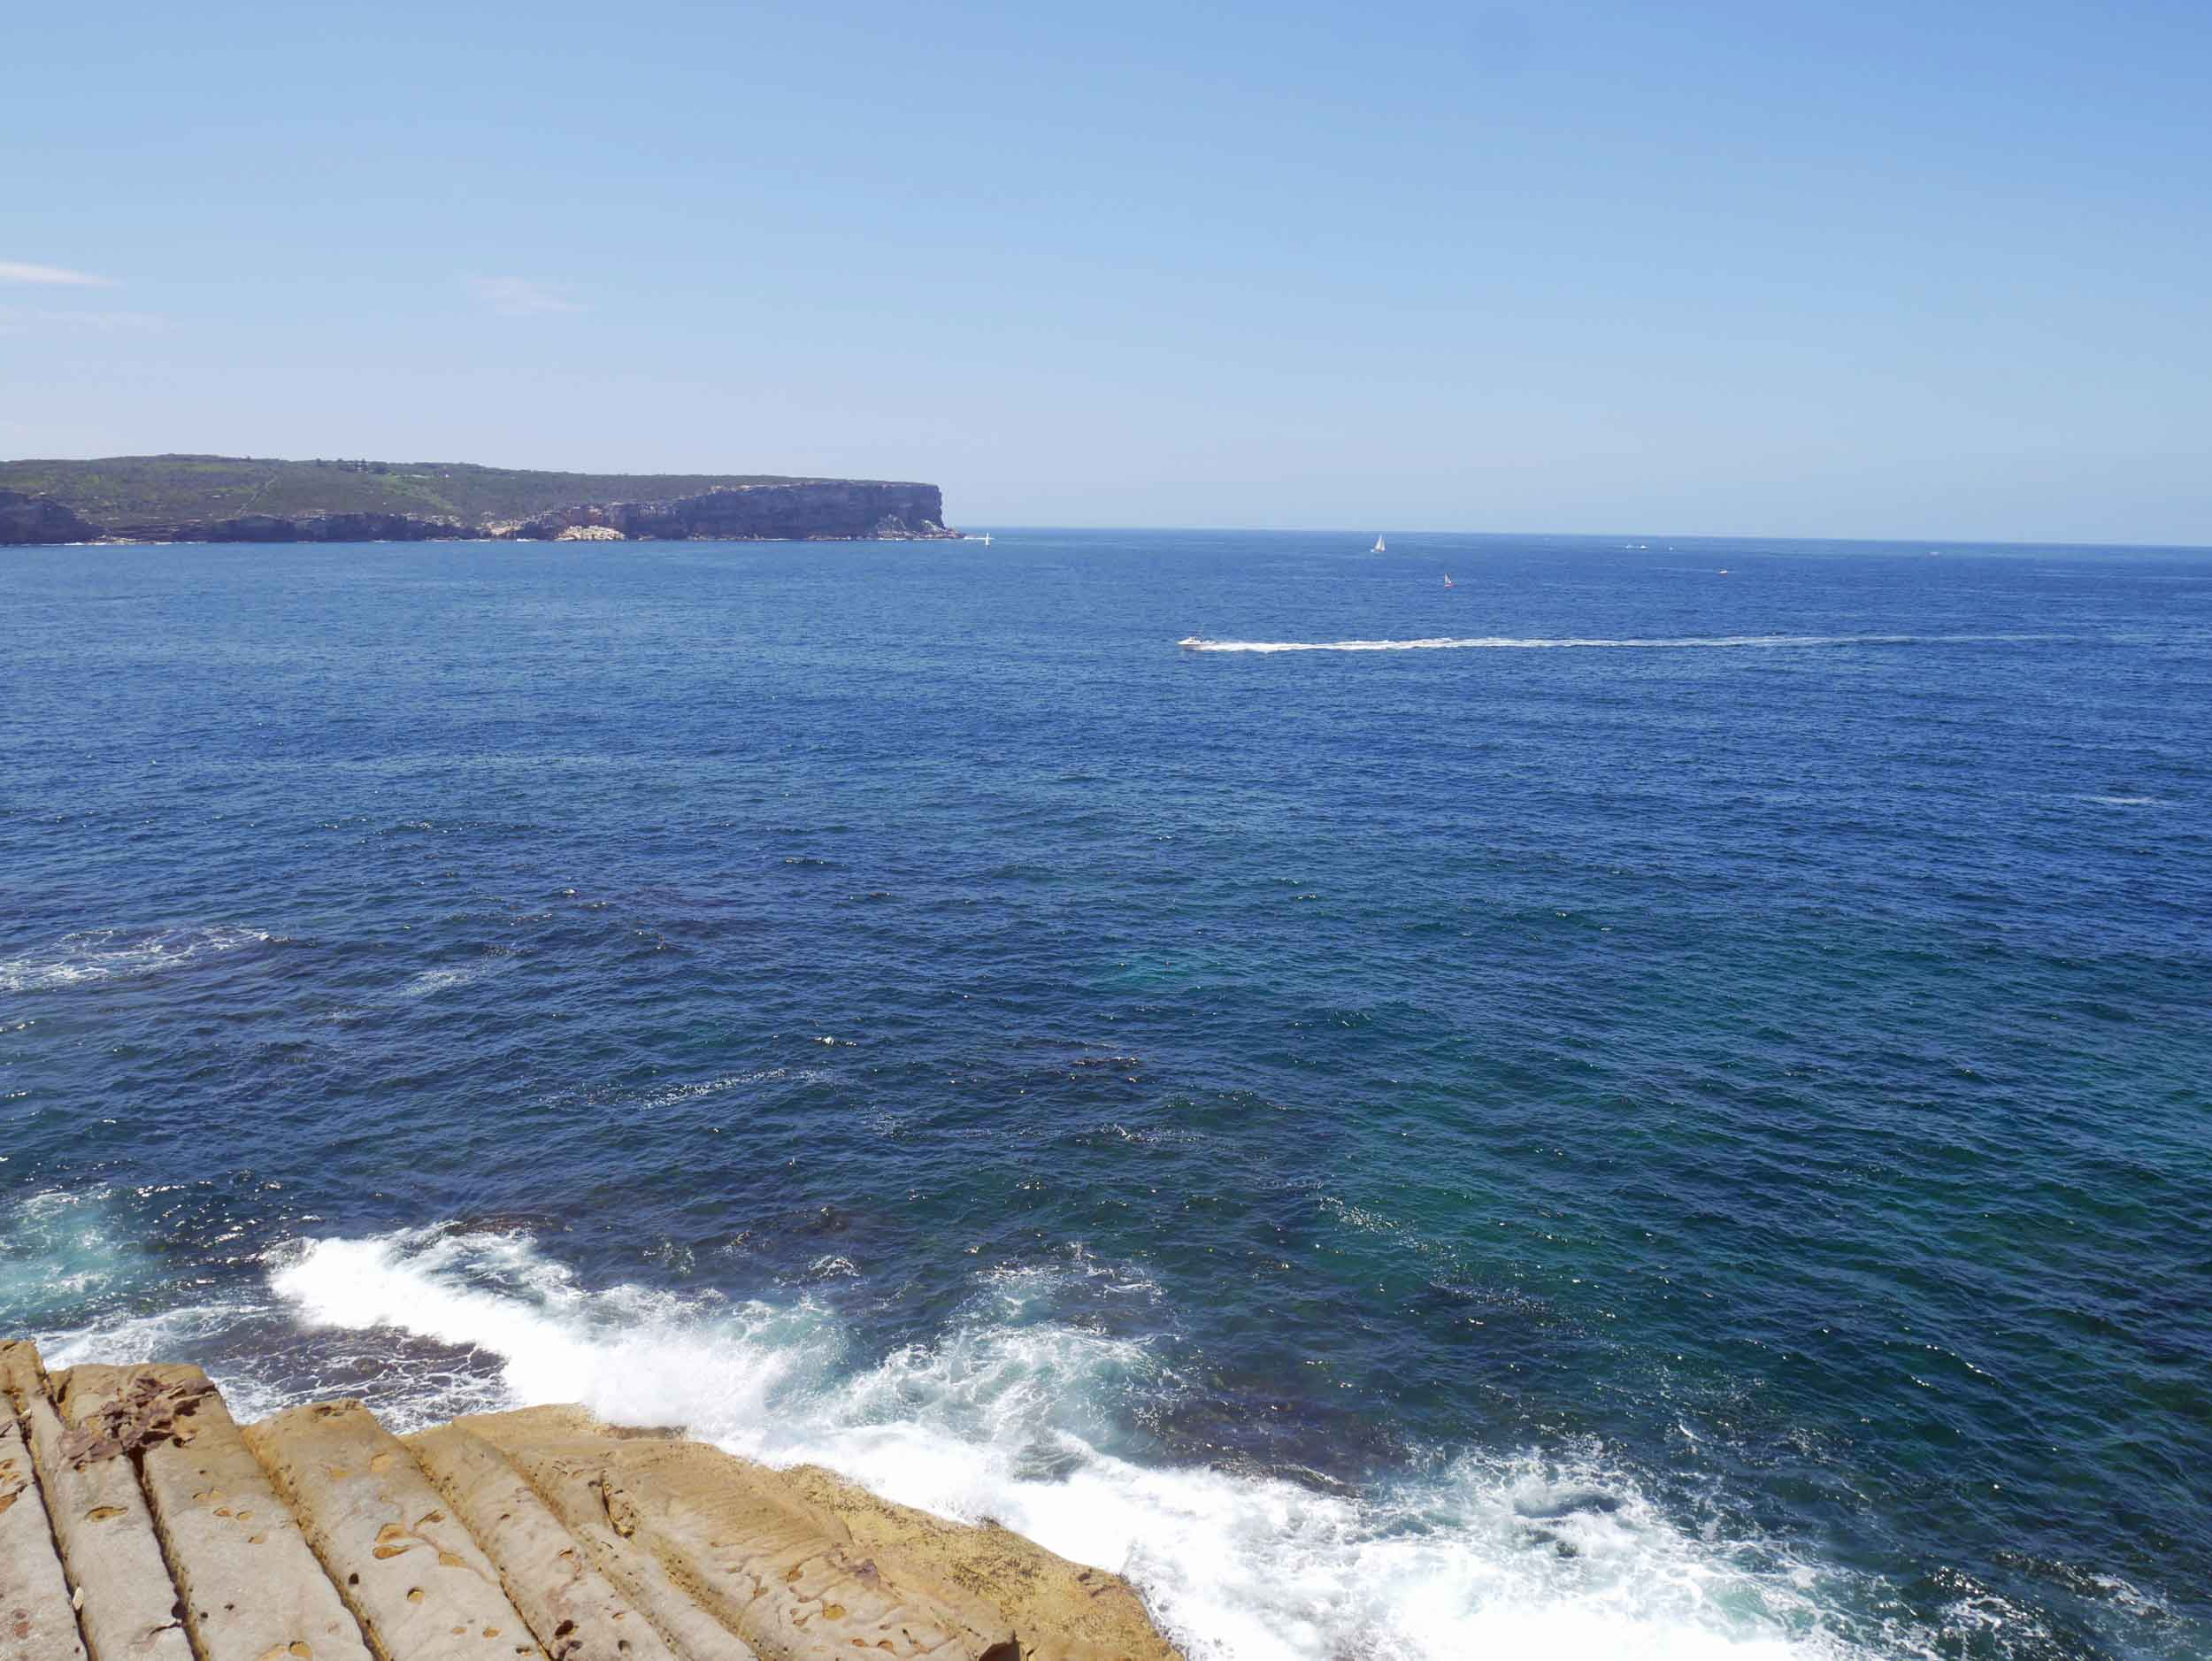 Looking across to Manly, which frames the Harbour entrance (Feb 4).